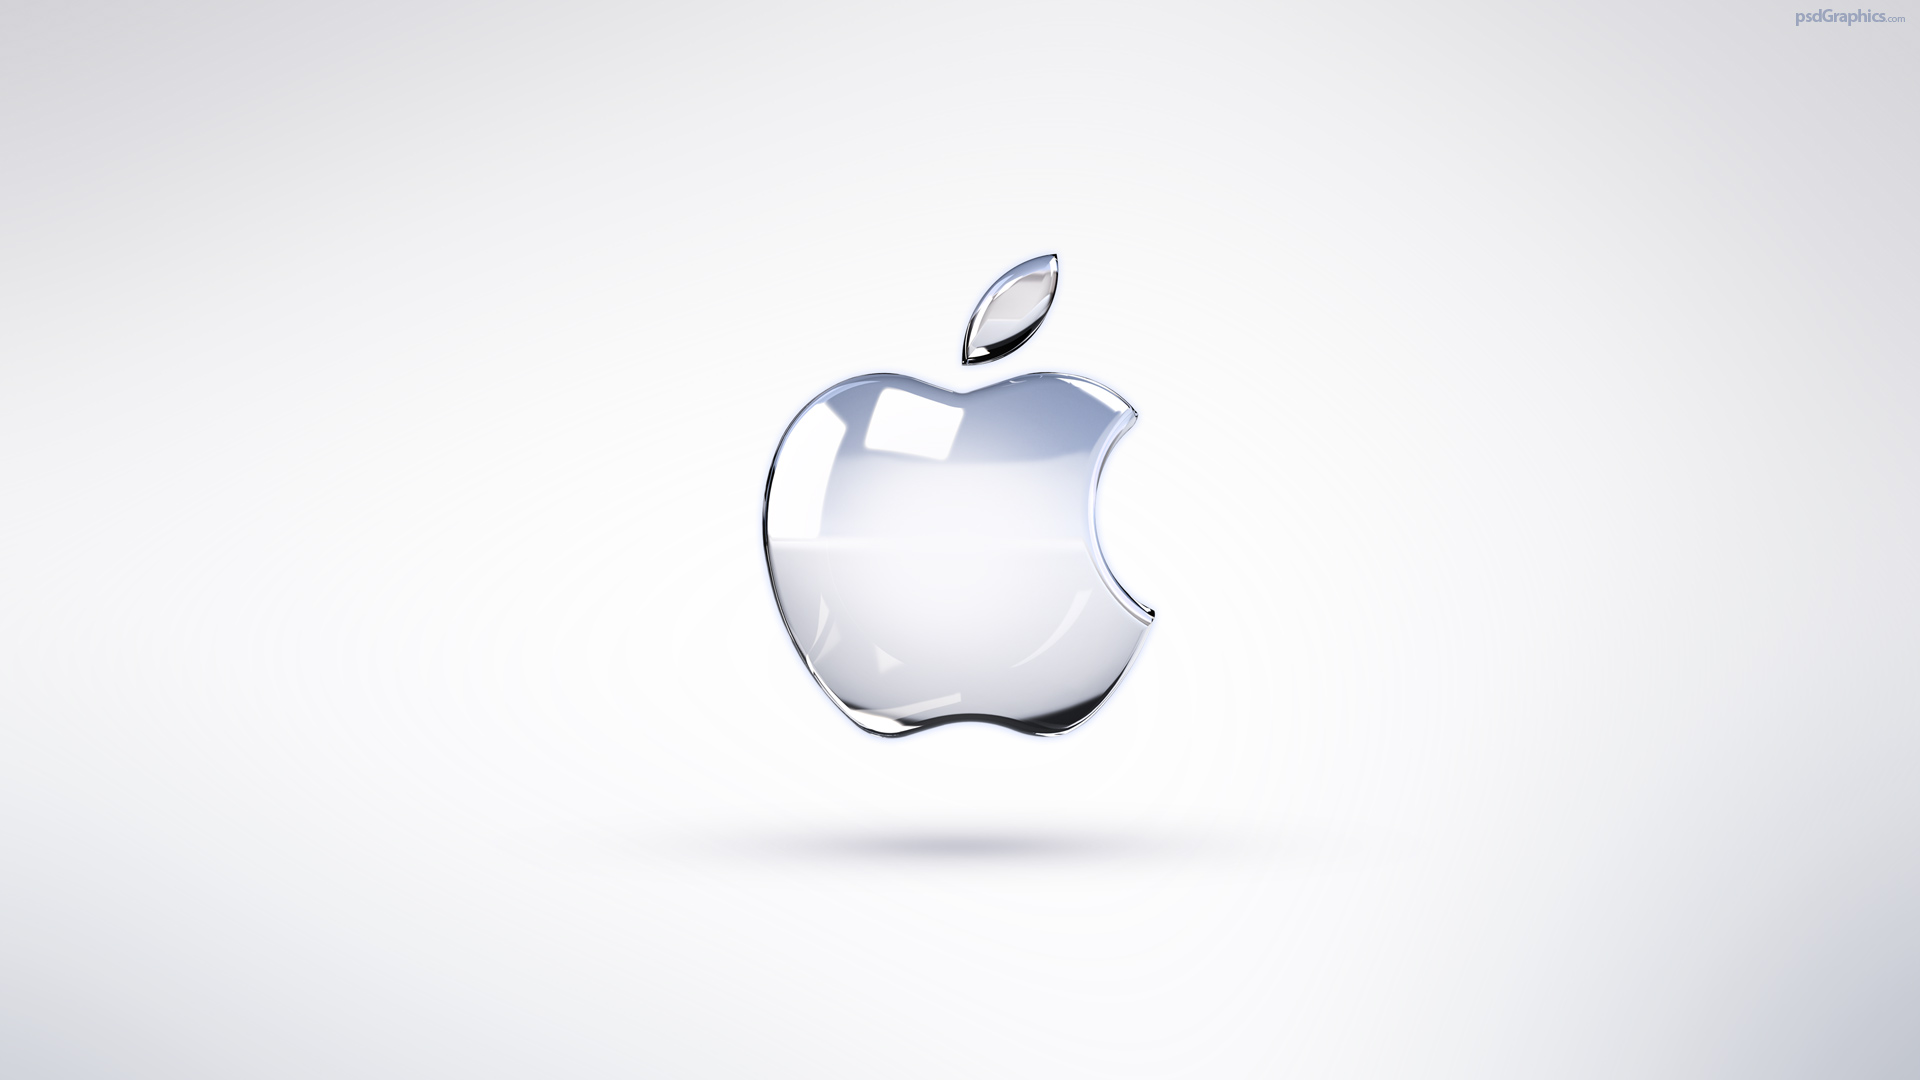 Apple Logo Hd Wallpaper Desktop Wallpapers Free Download Wallpaper